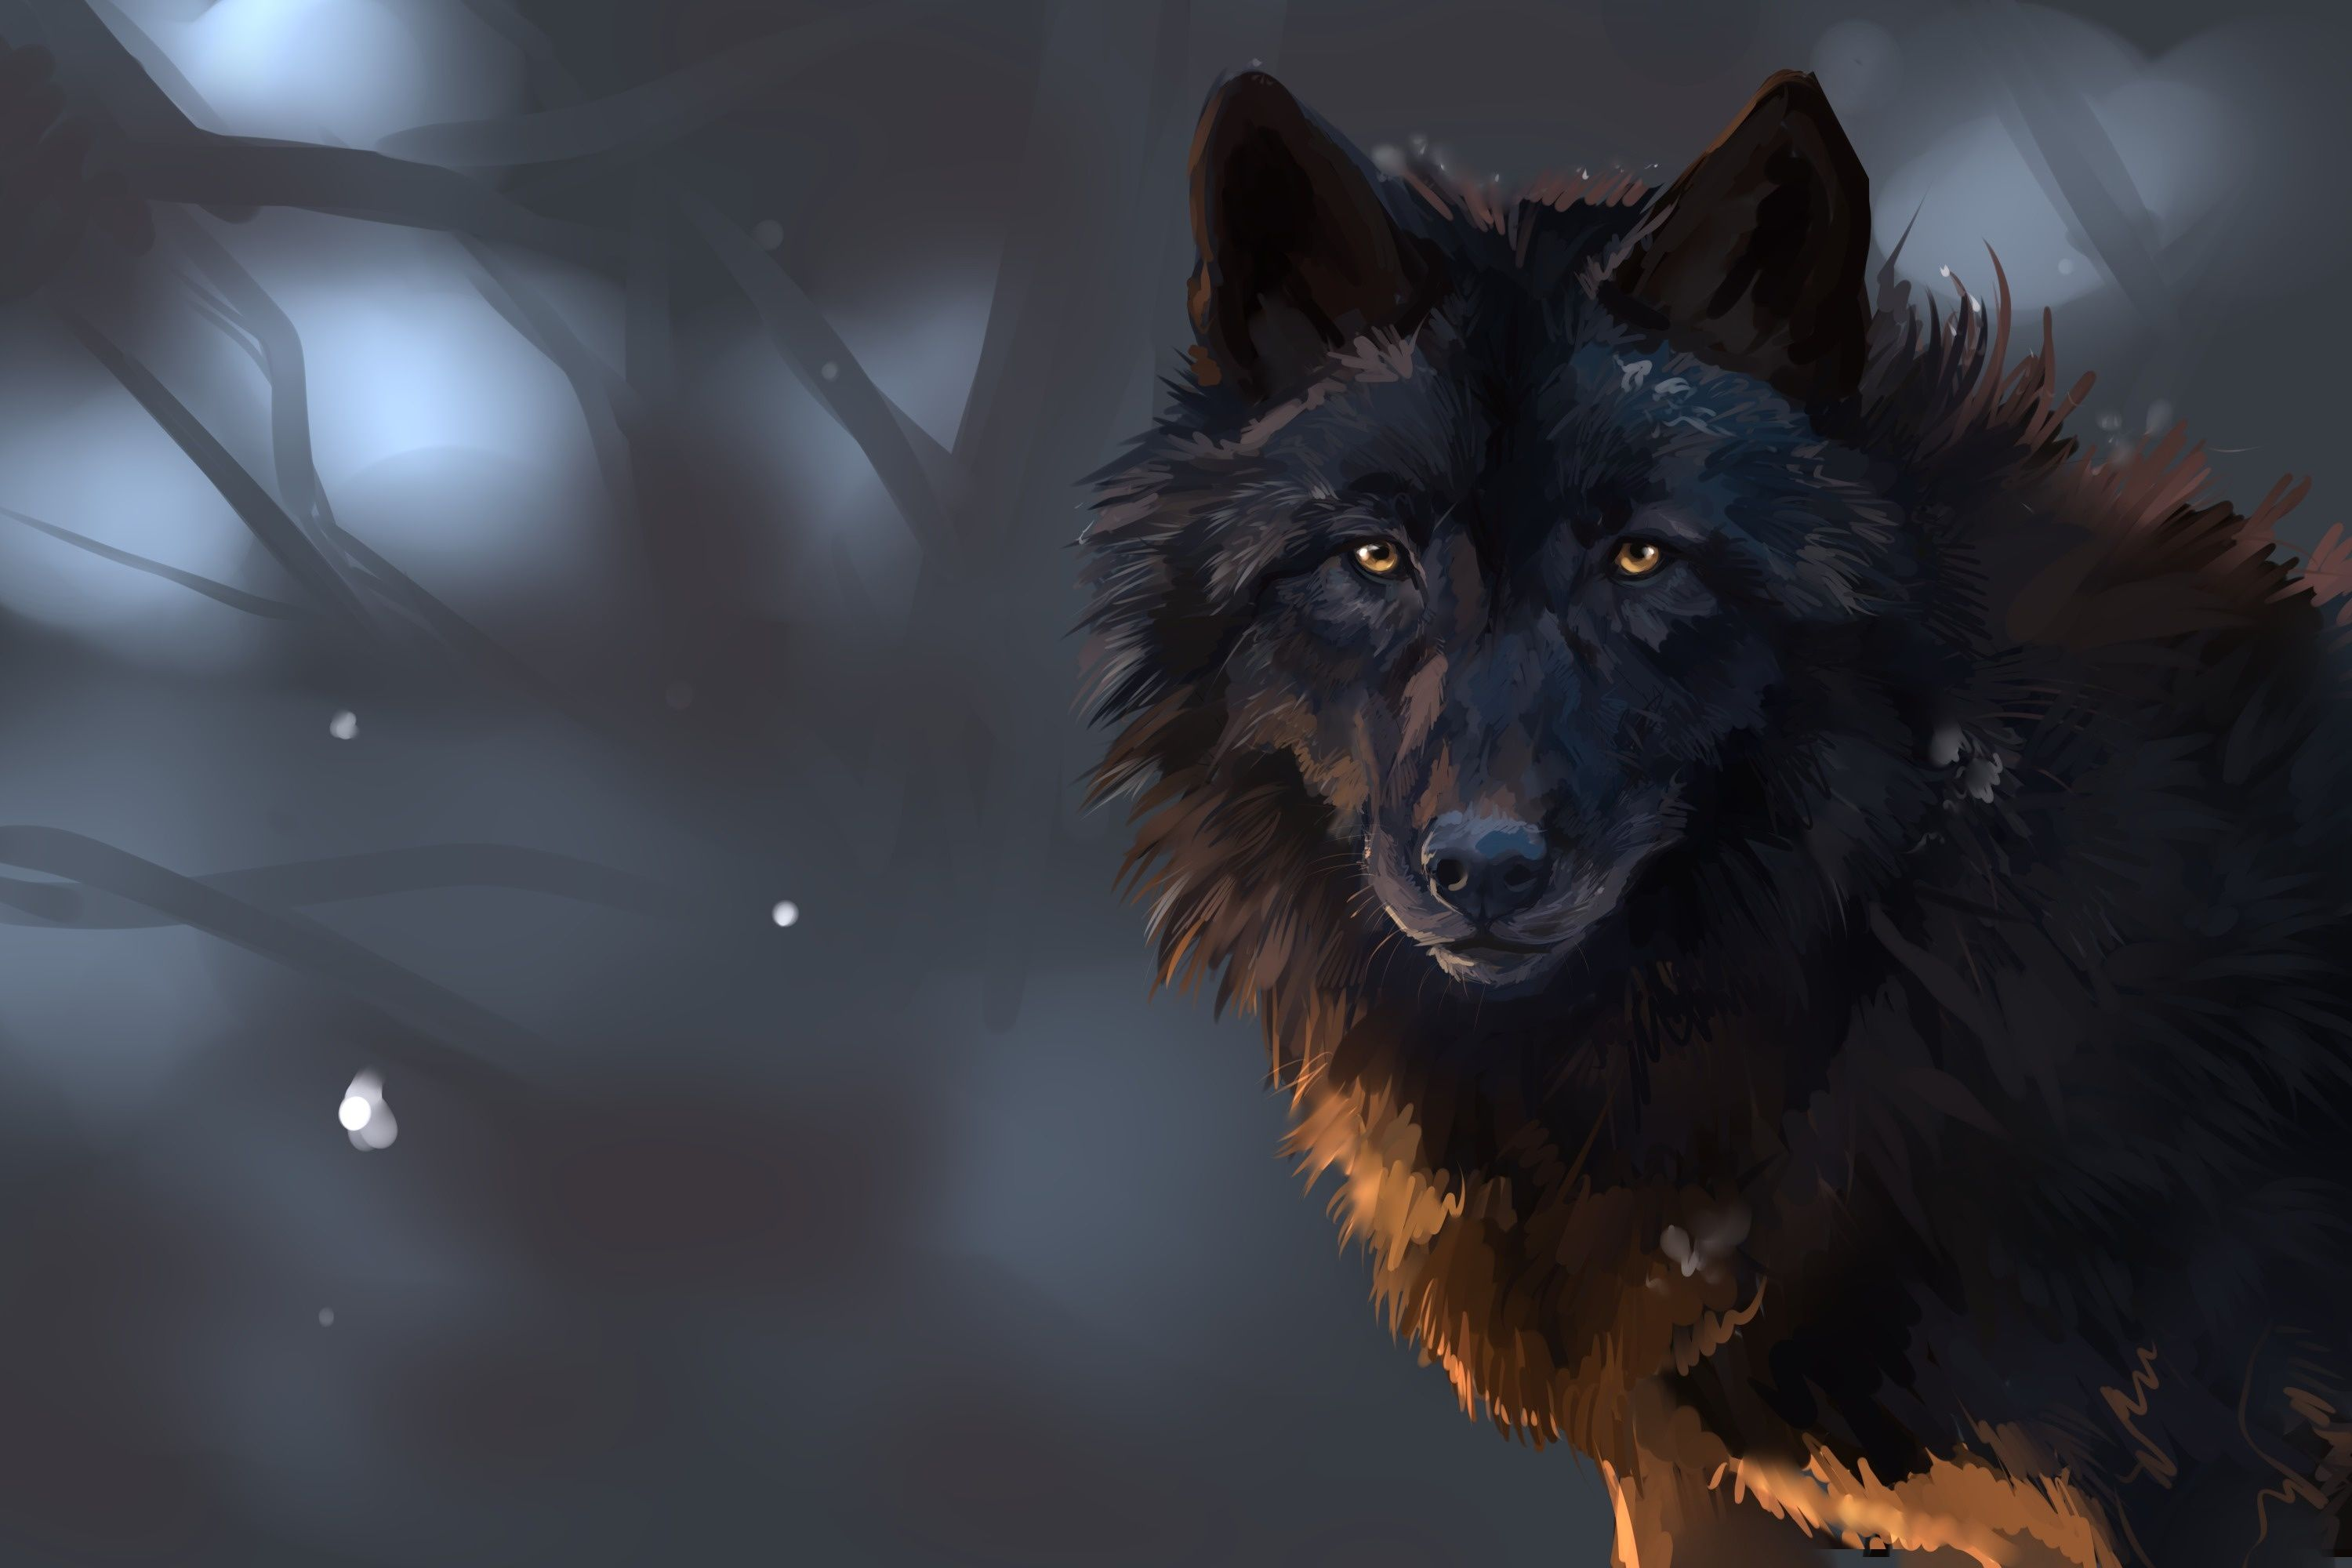 Hd wallpaper wolf - Wolf Wallpaper Hd Desktop